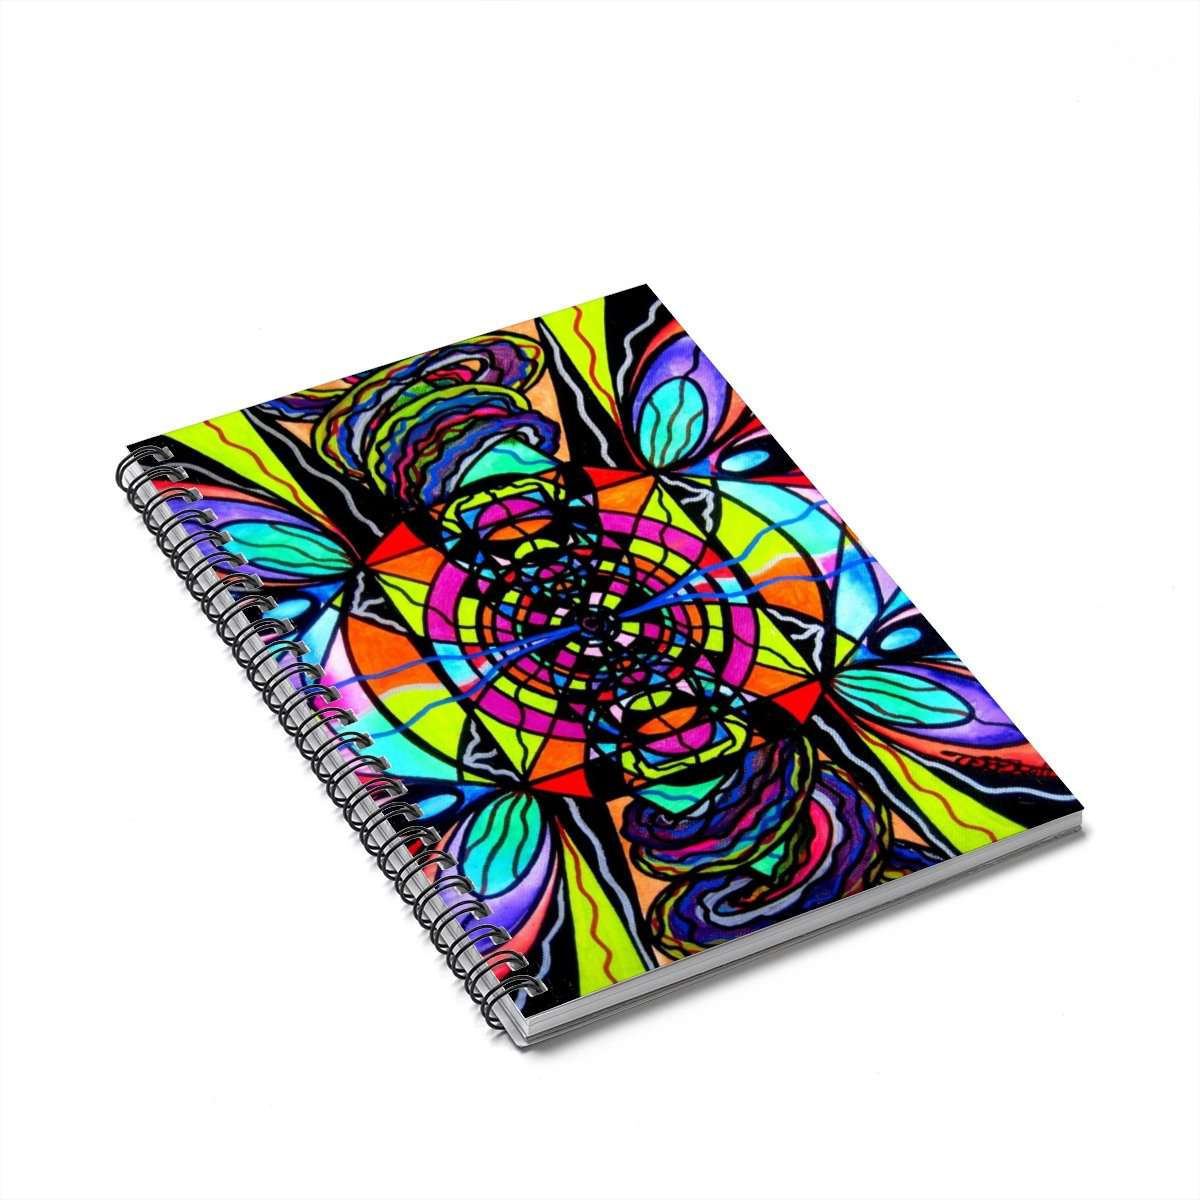 Planetary Vortex - Spiral Notebook